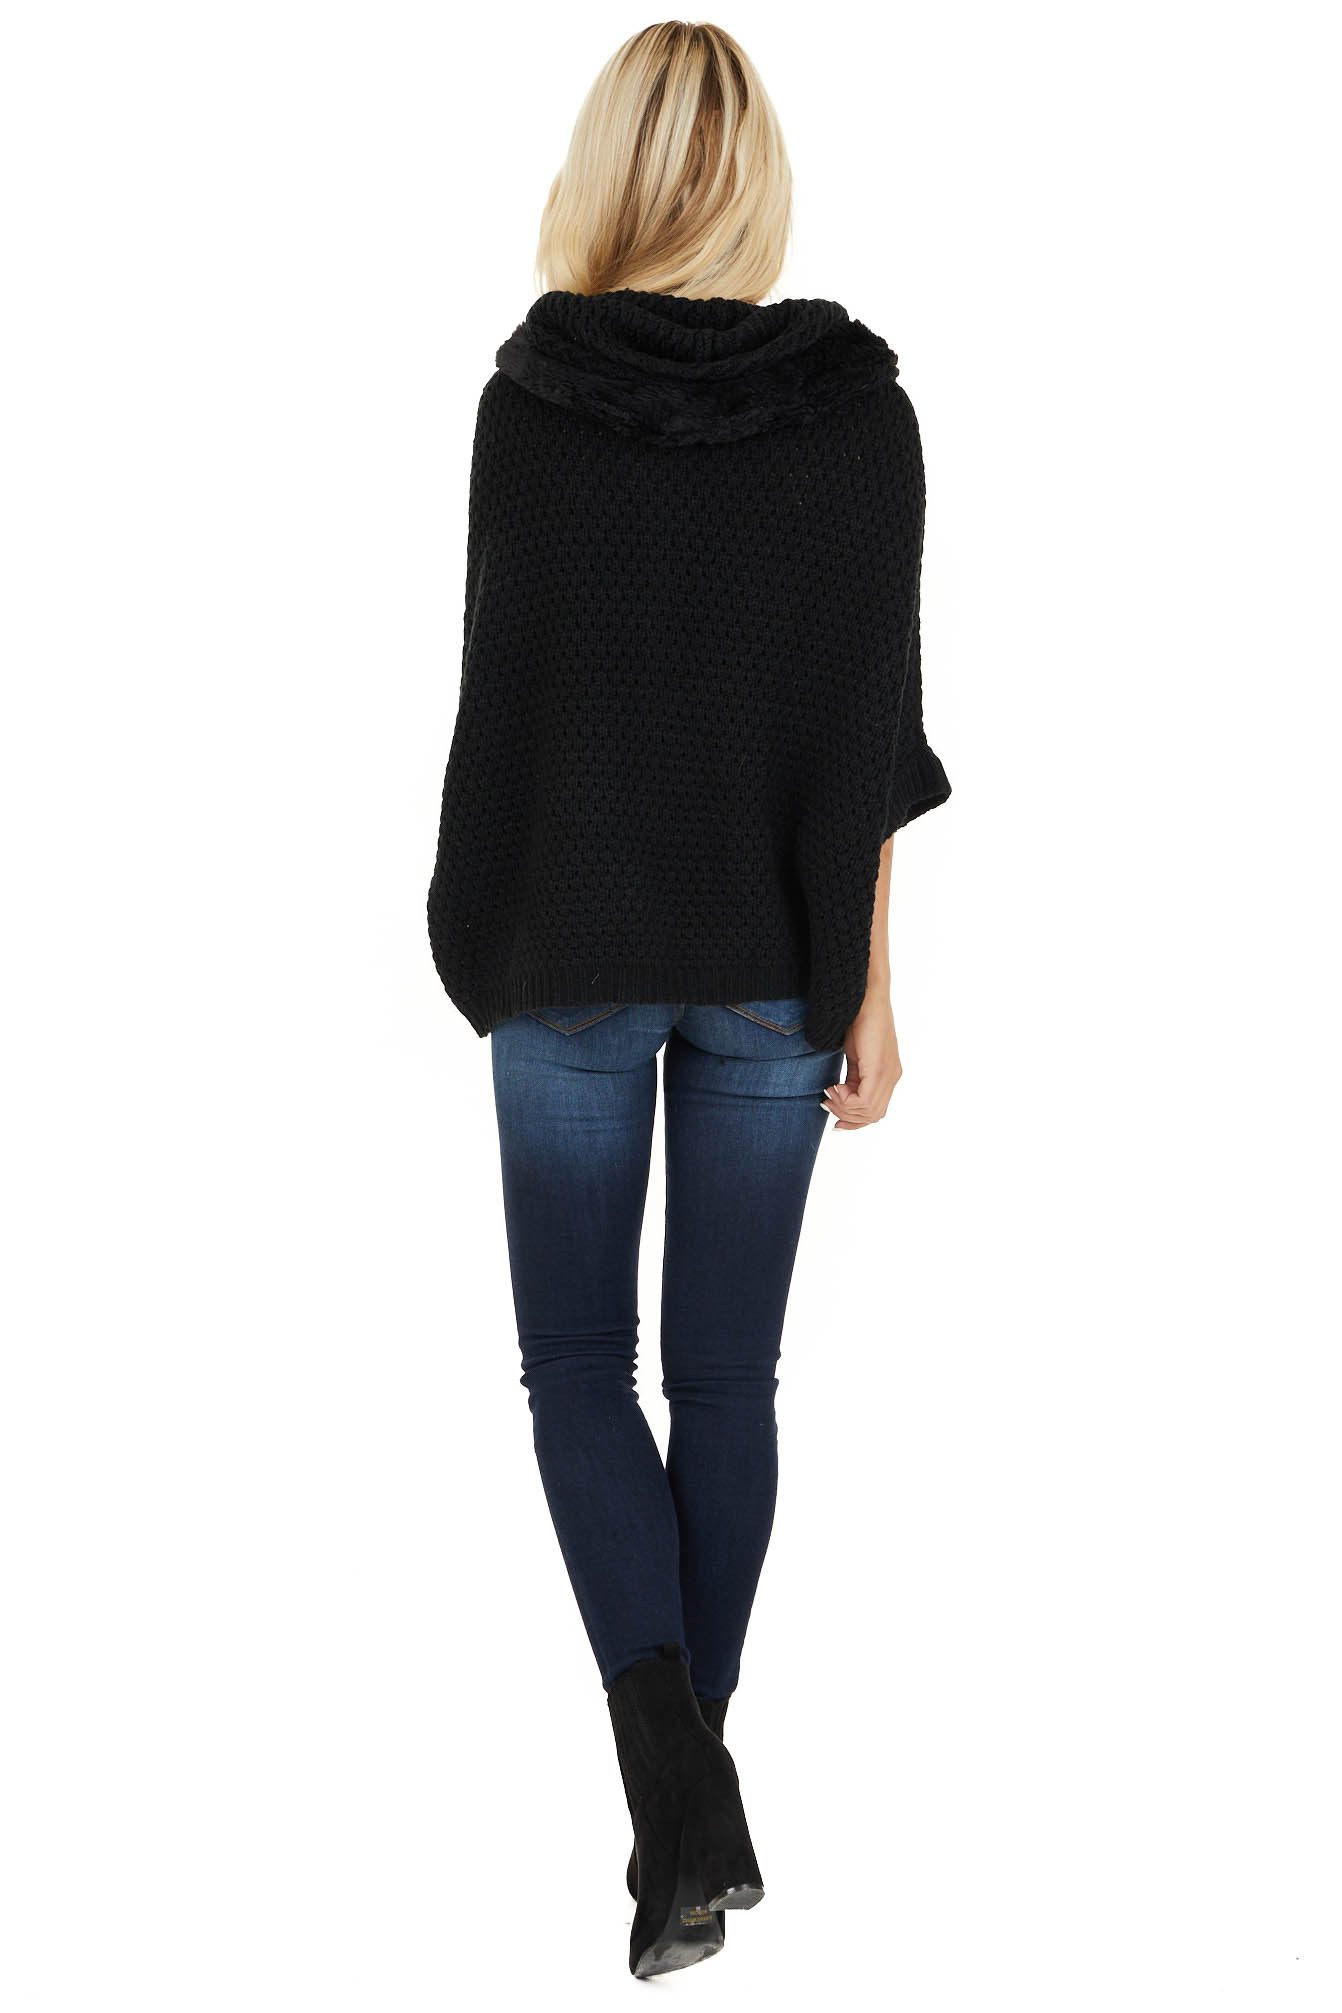 Black Short Sleeve Knit Jacket with Faux Fur Lined Hood back full body